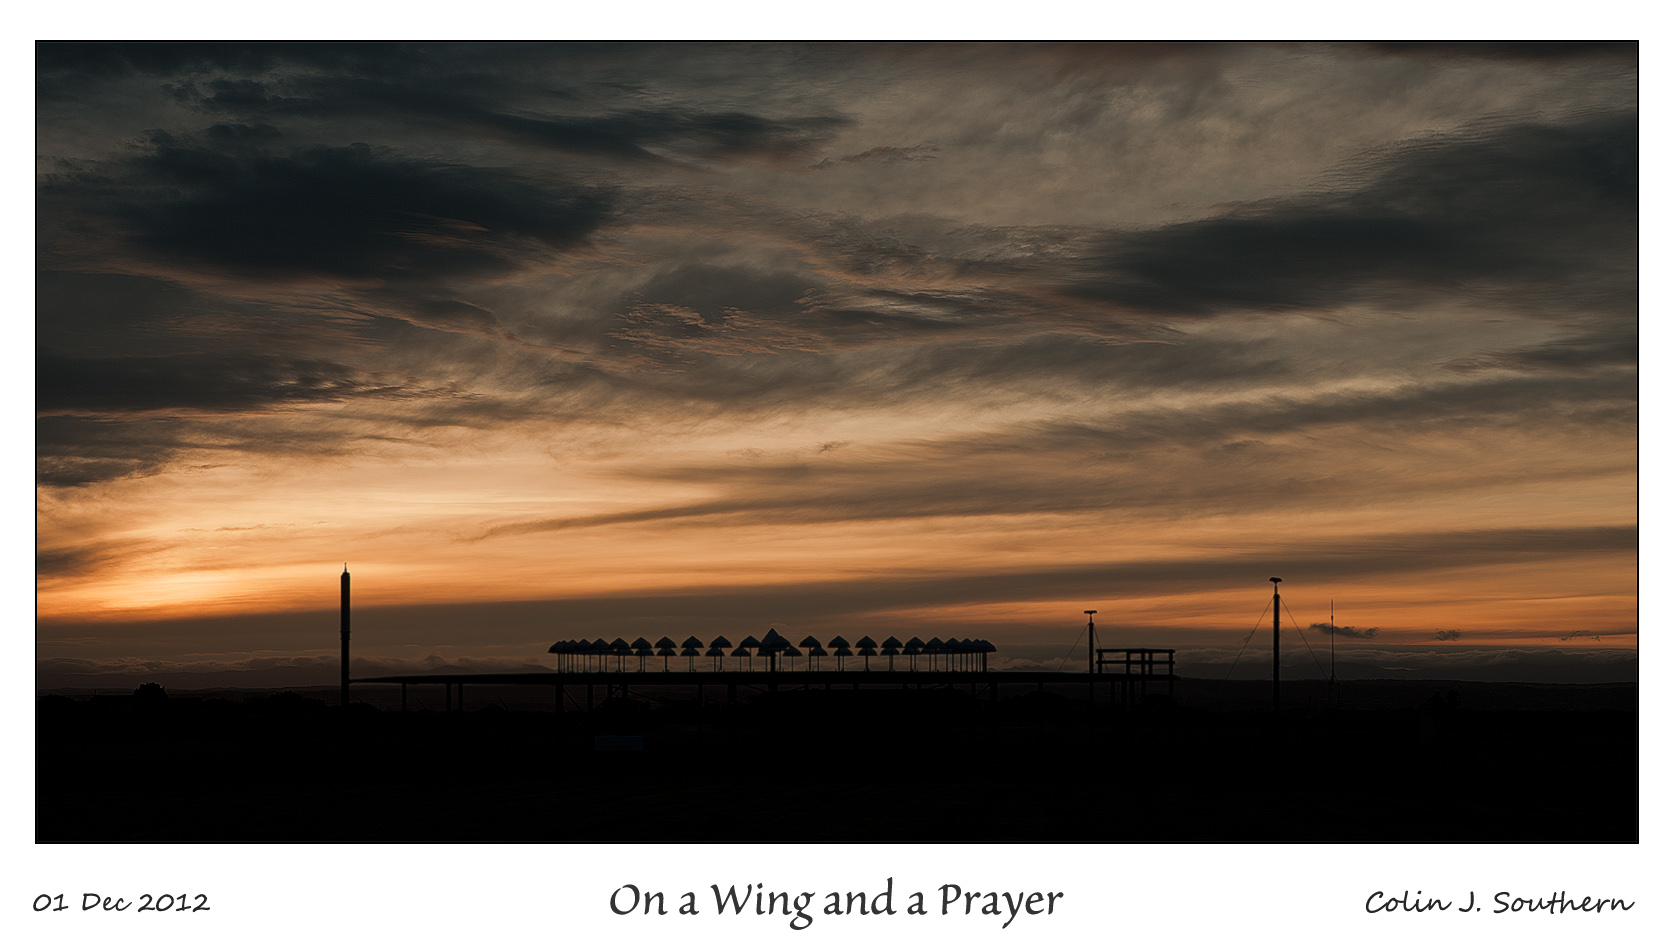 On a Wing & a Prayer